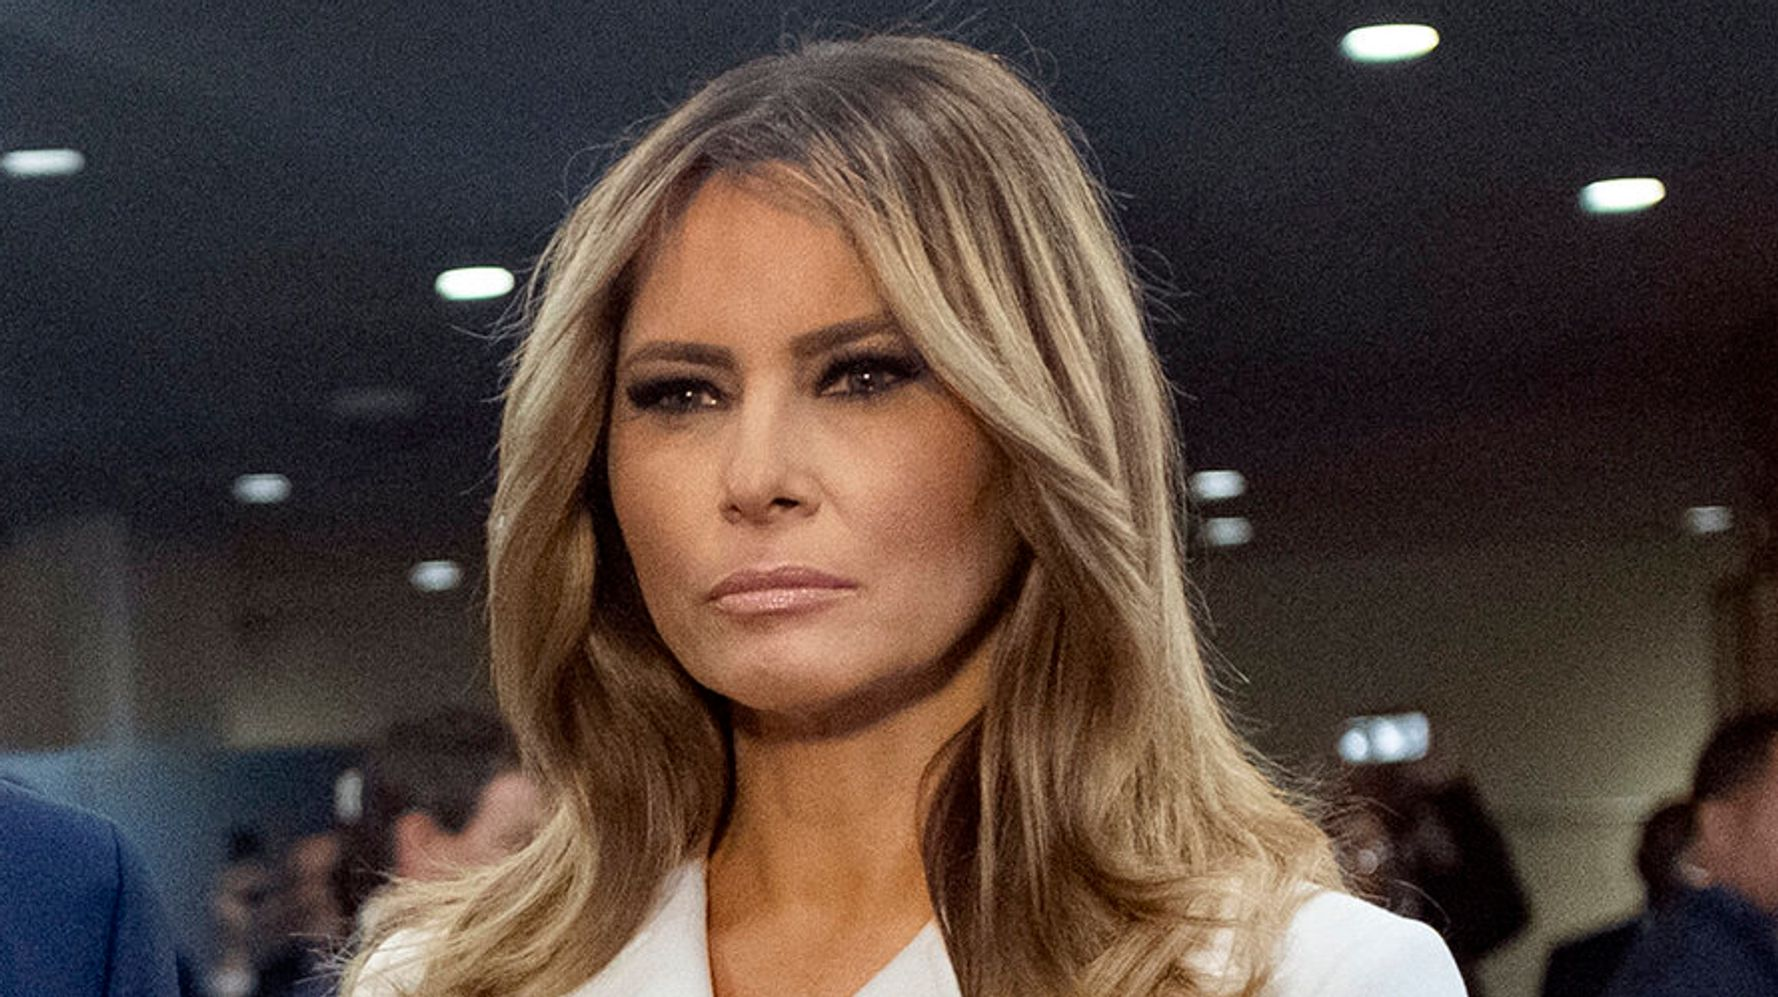 Melania Trump Said She's 'Dedicated To Helping Children,' And It Didn't Go So Well